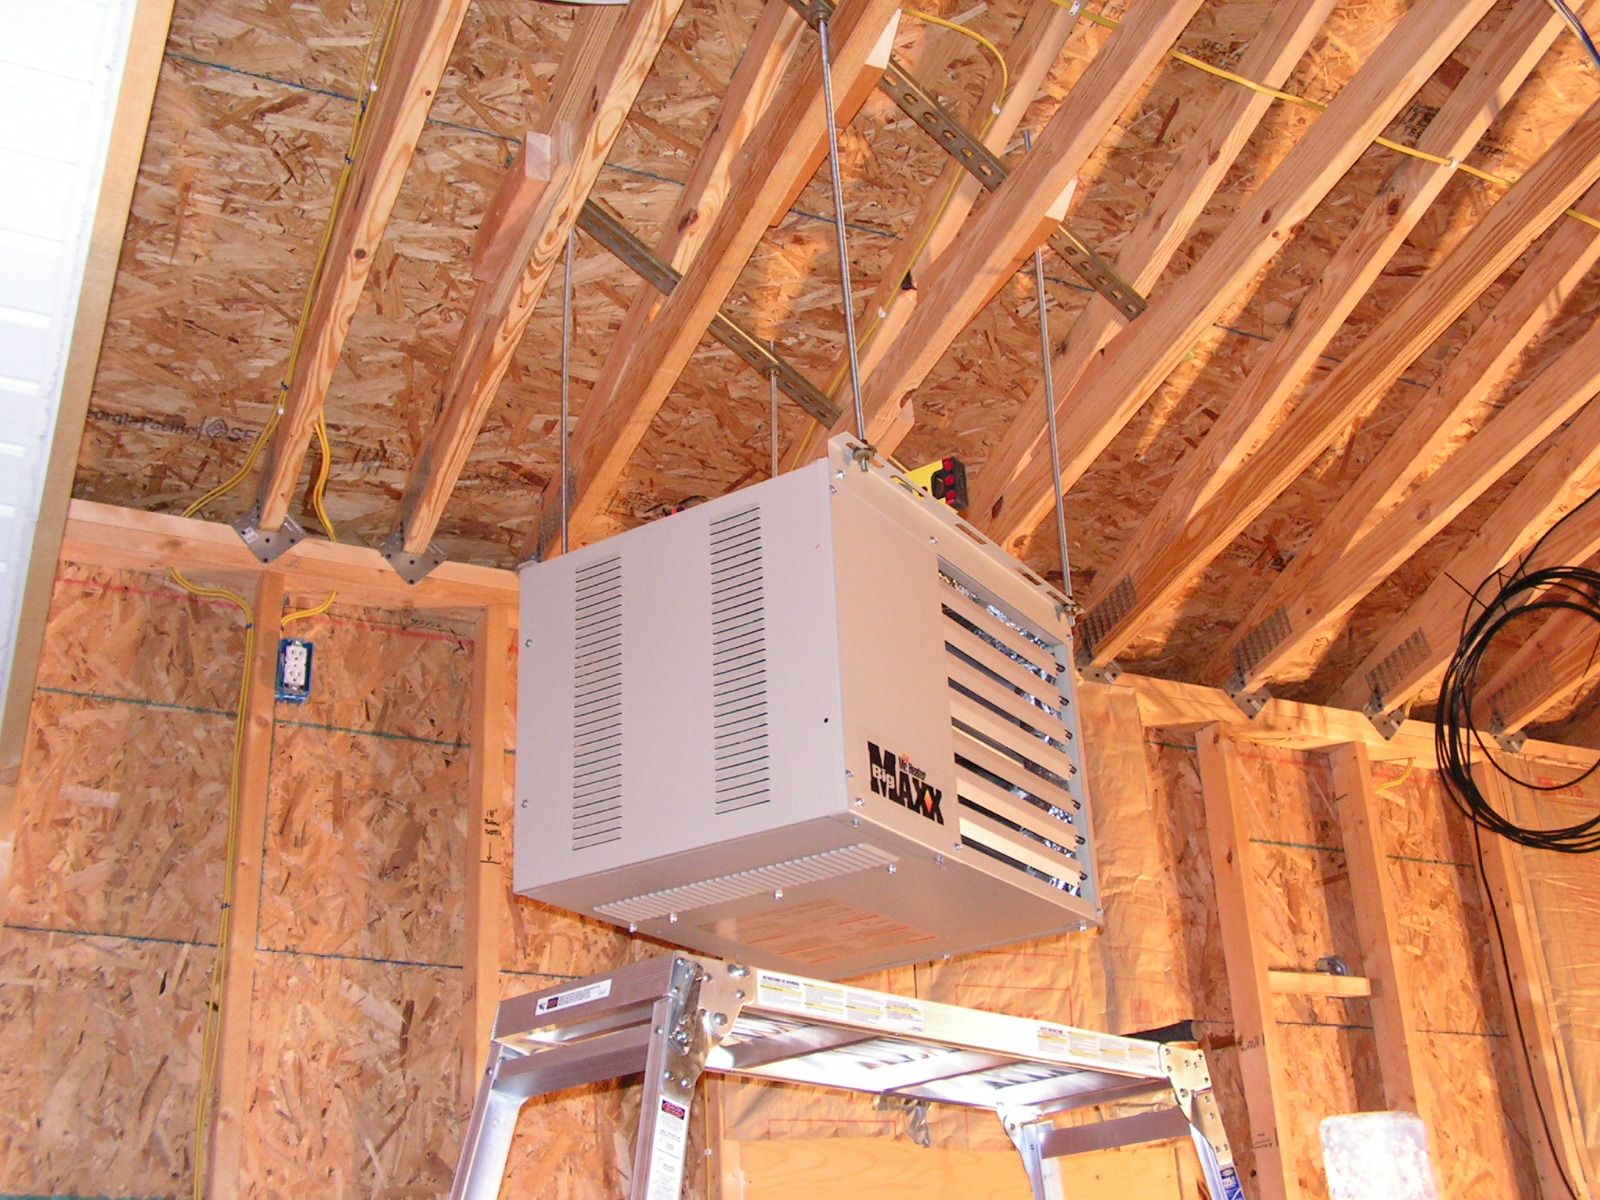 Overhead garage storage racks Anyone use the ones from New age